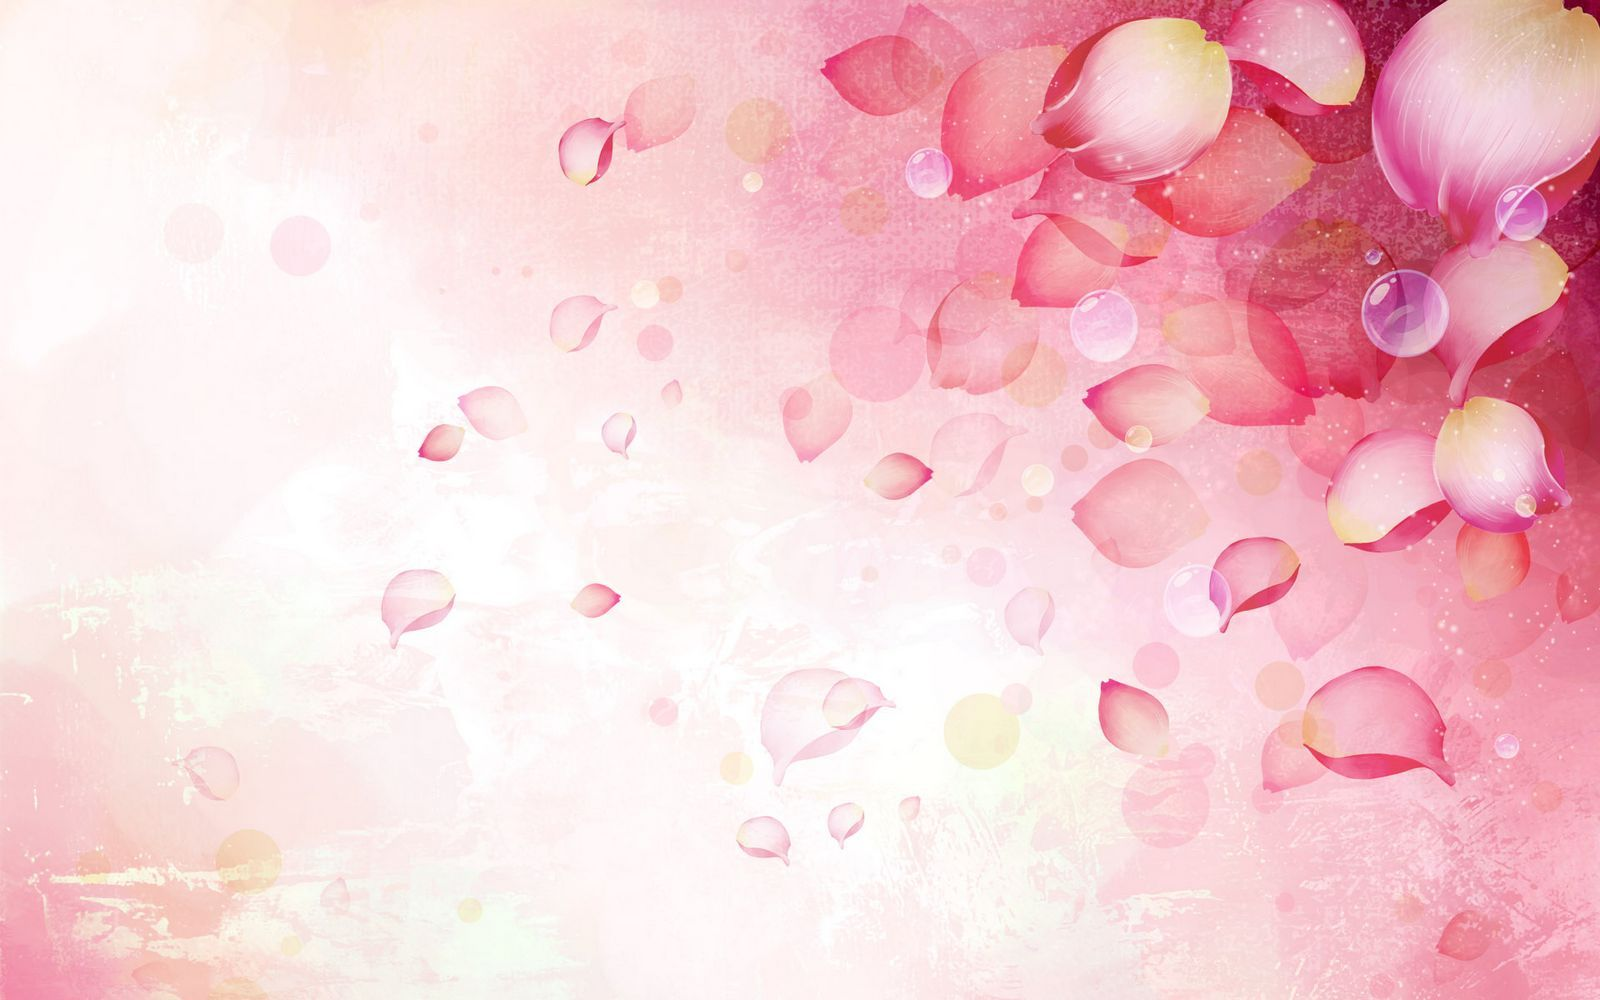 Romantic Love Letter » A Romantic Love Letter With Rose Petals